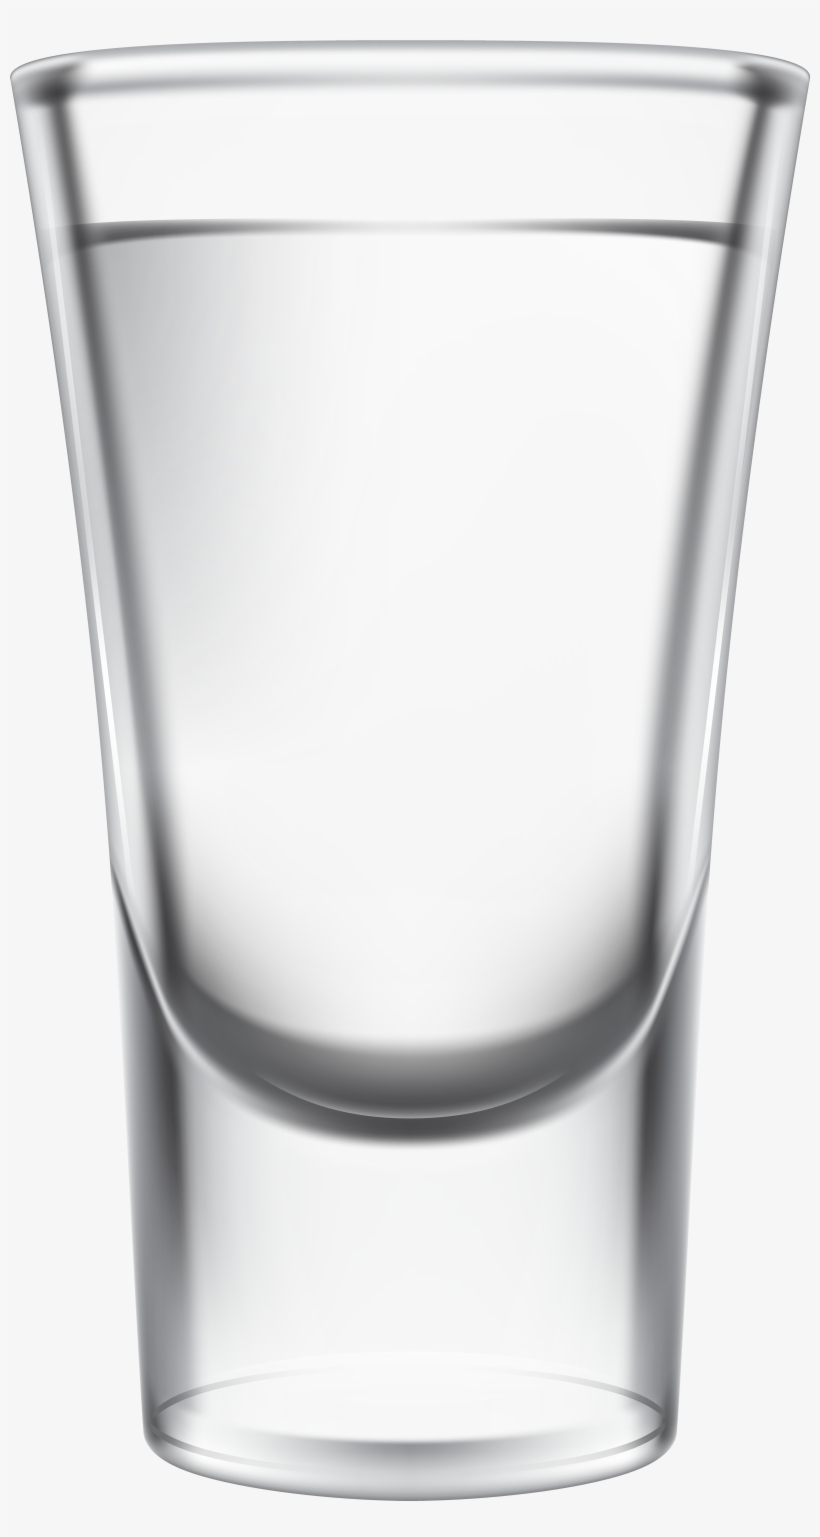 Black and white clipart glass clip art royalty free download Jpg Glass Of Water Clipart Black And White - Clip Art Shot Glass ... clip art royalty free download